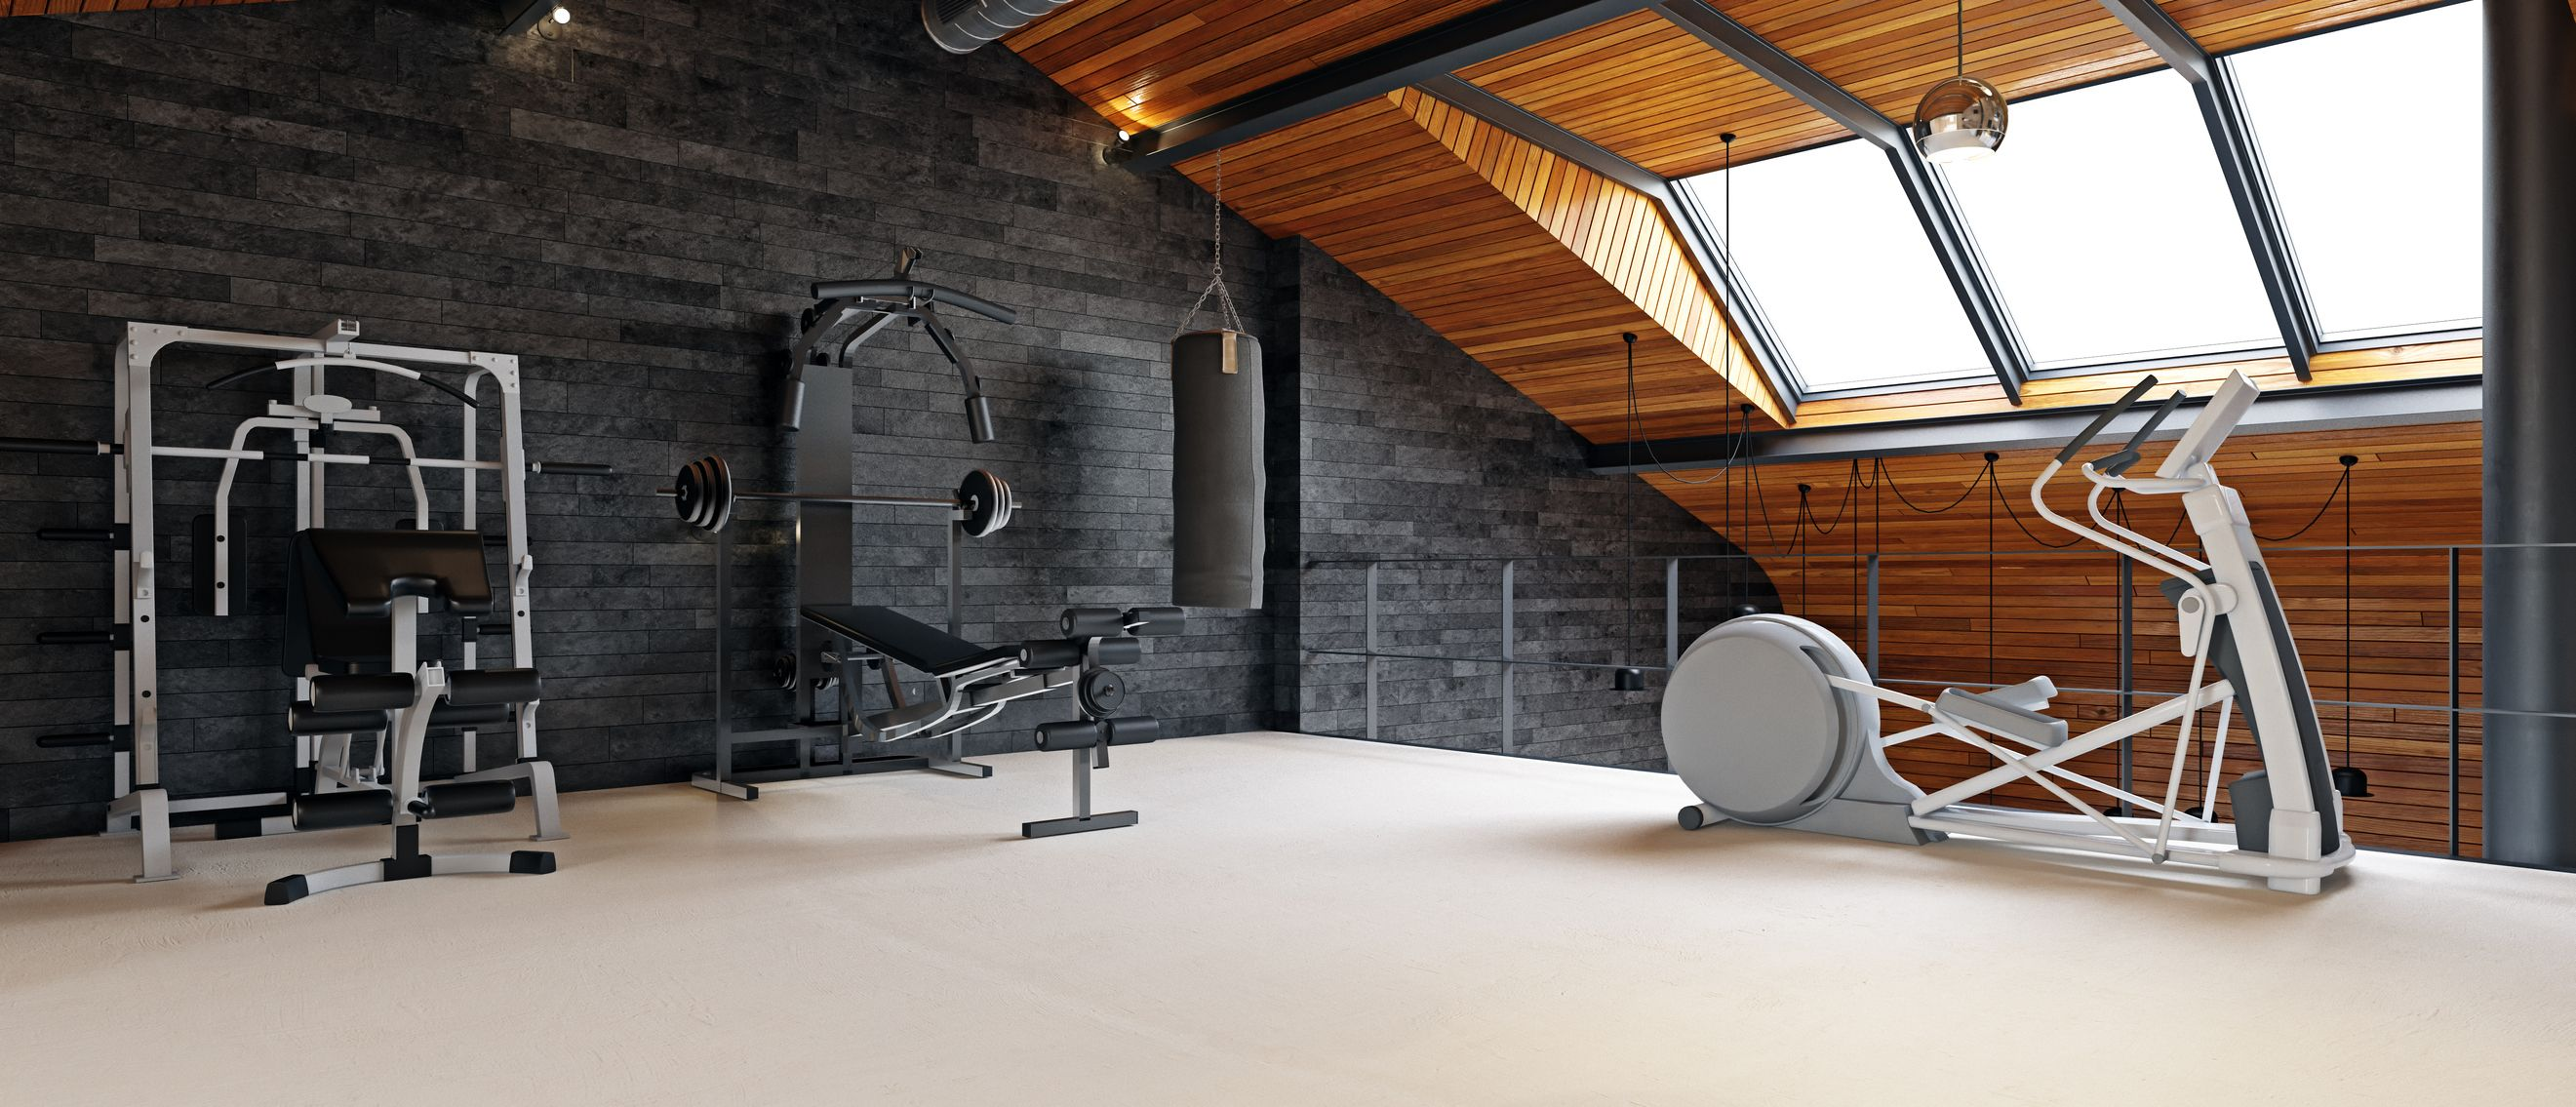 home-gym-room-in-the-attic-royalty-free-image-1092674152-1565968486.jpg